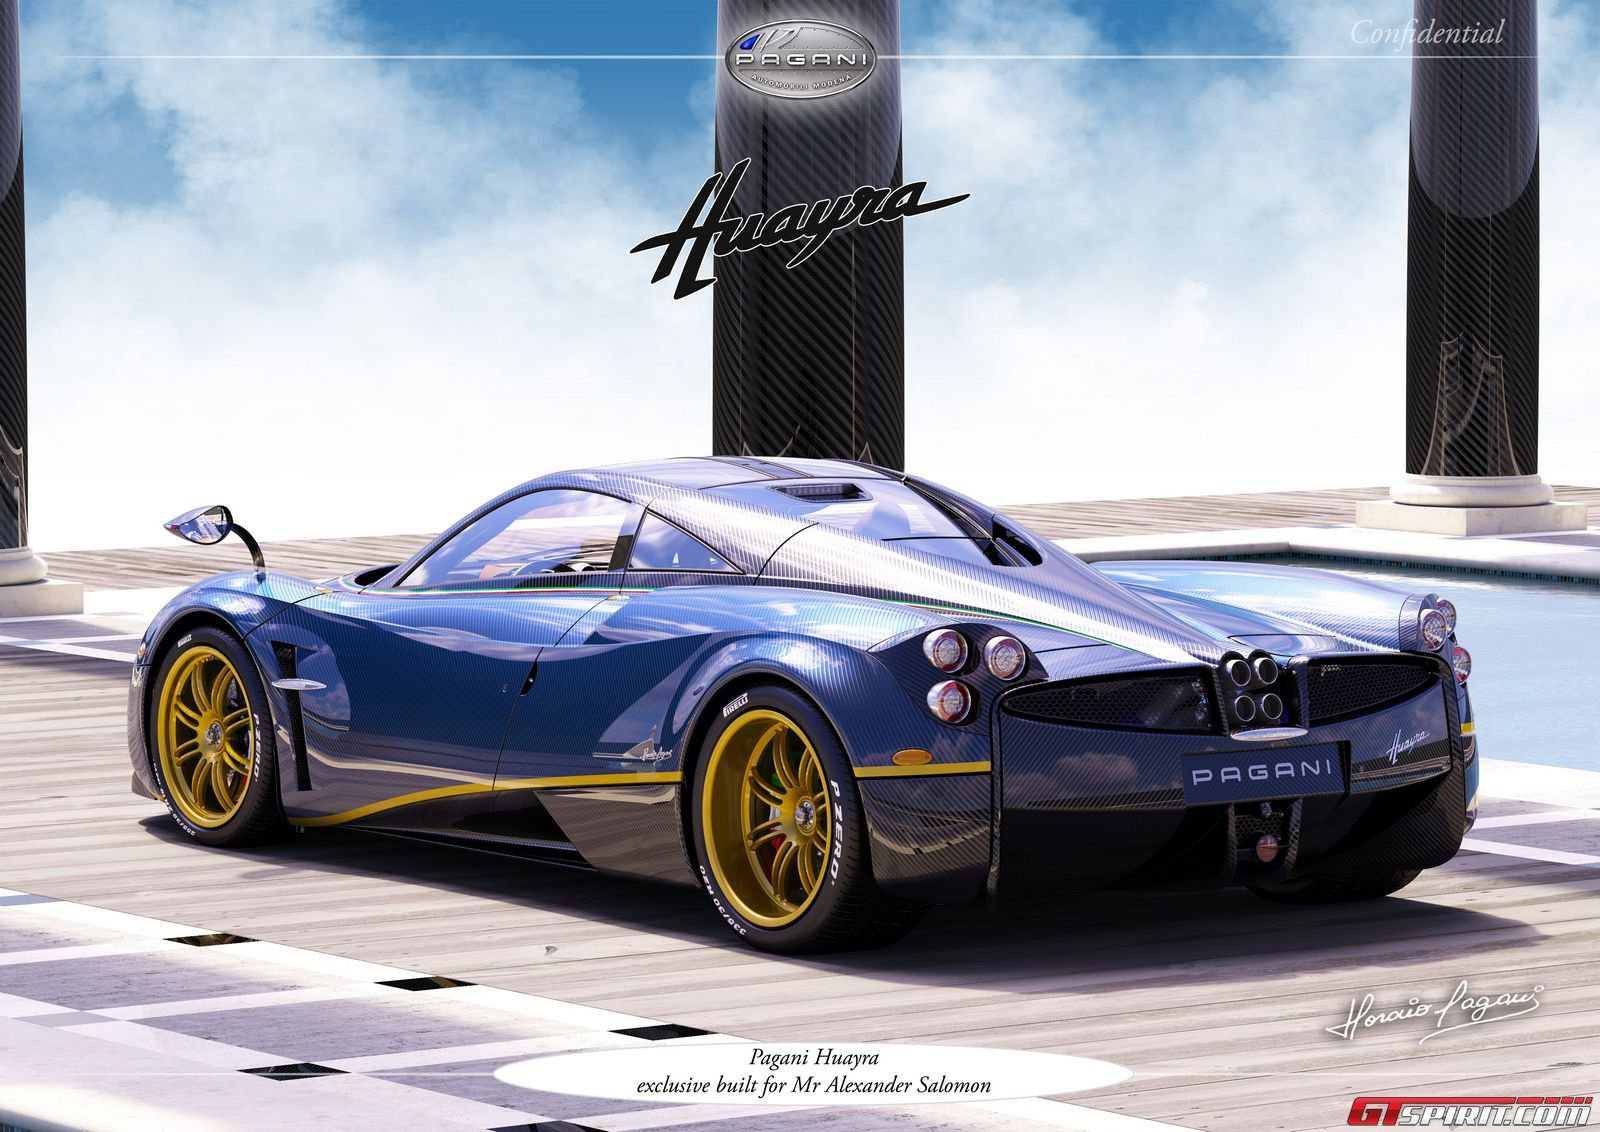 exclusive pagani huayra 730 s edition gtspirit. Black Bedroom Furniture Sets. Home Design Ideas